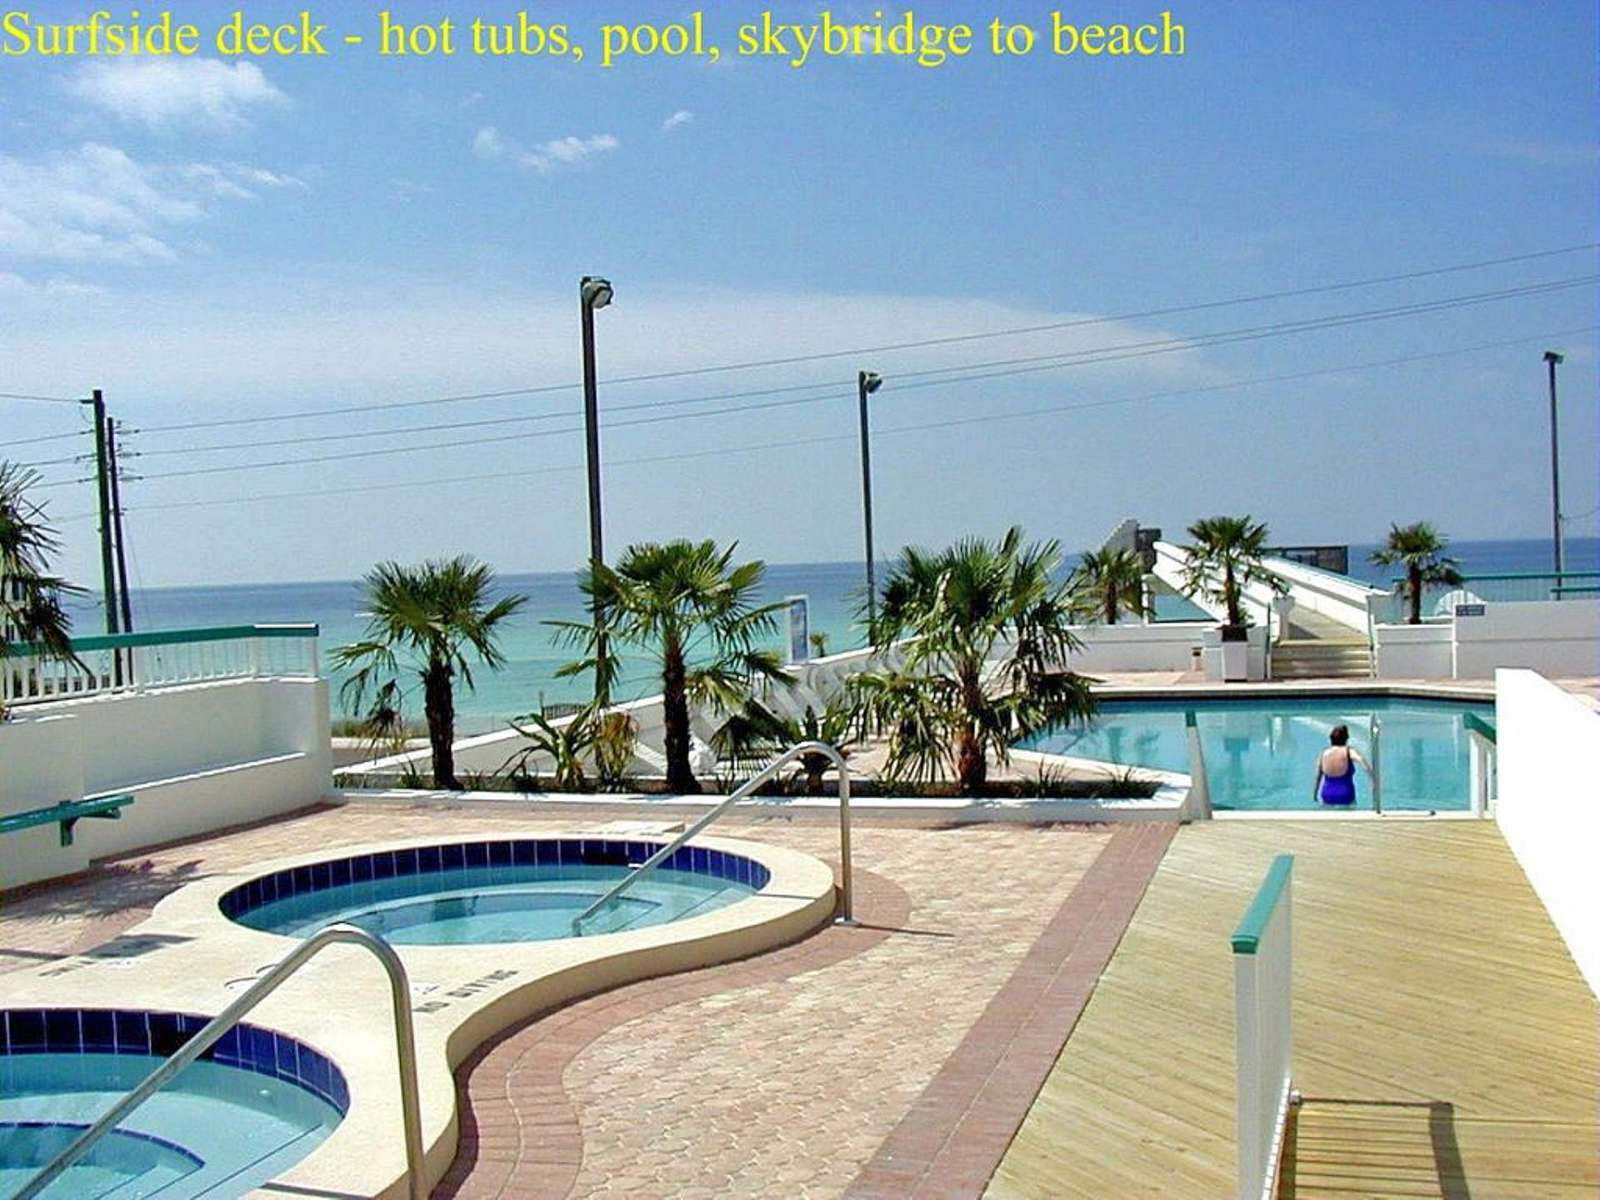 TWO HOT TUBS ON POOL DECK